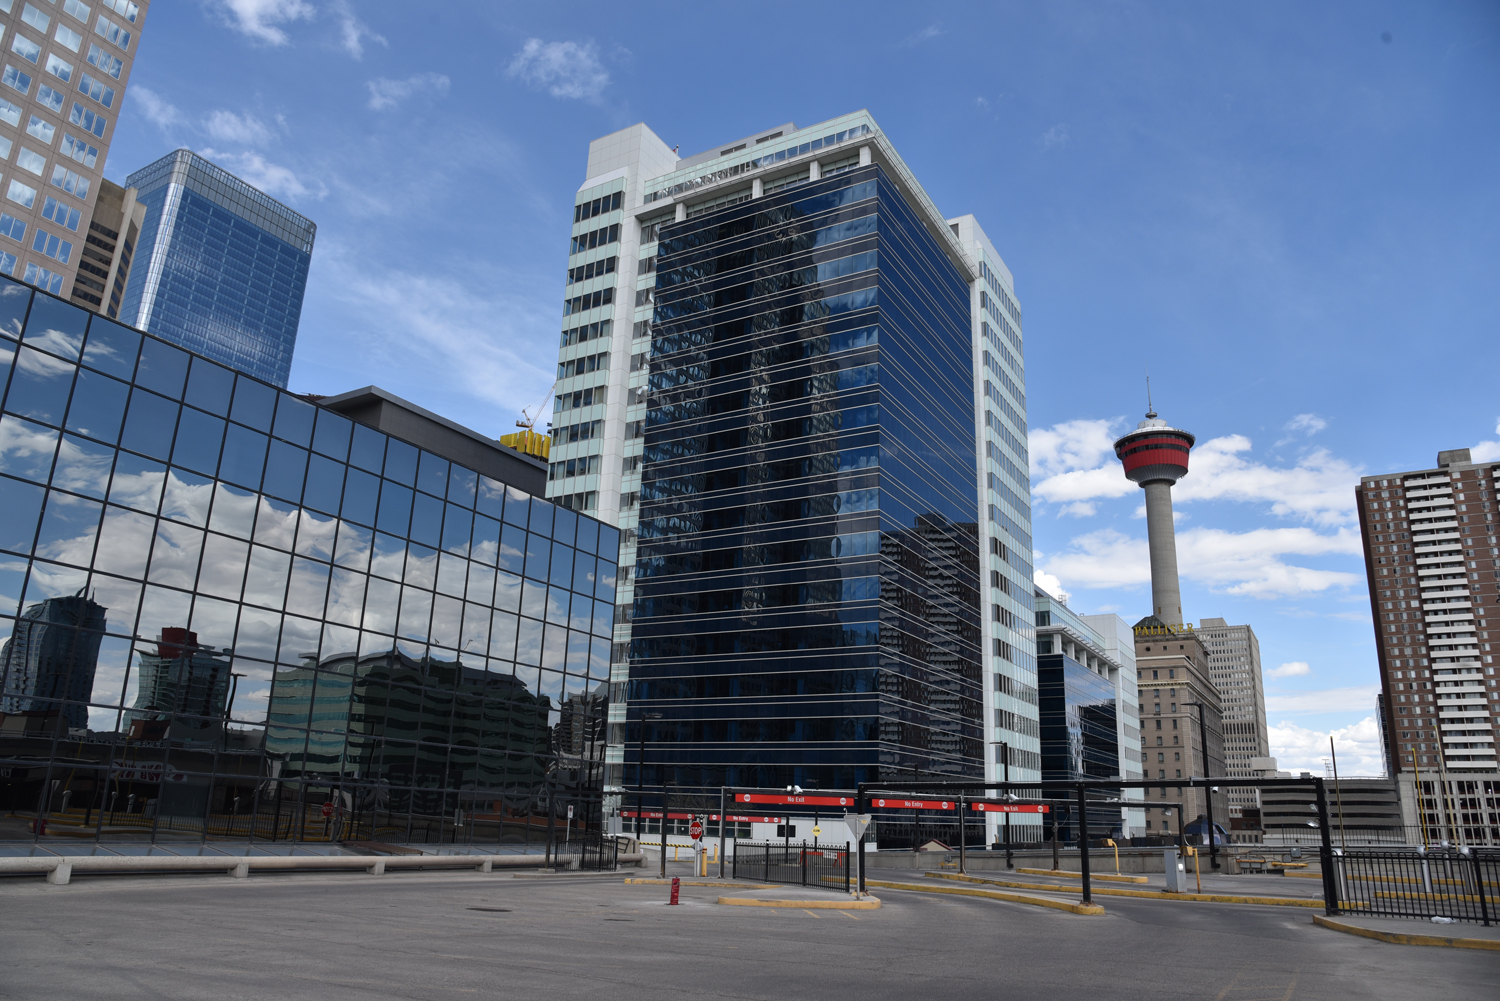 9th Ave & 2nd Street (Gulf Canada Square parkade)